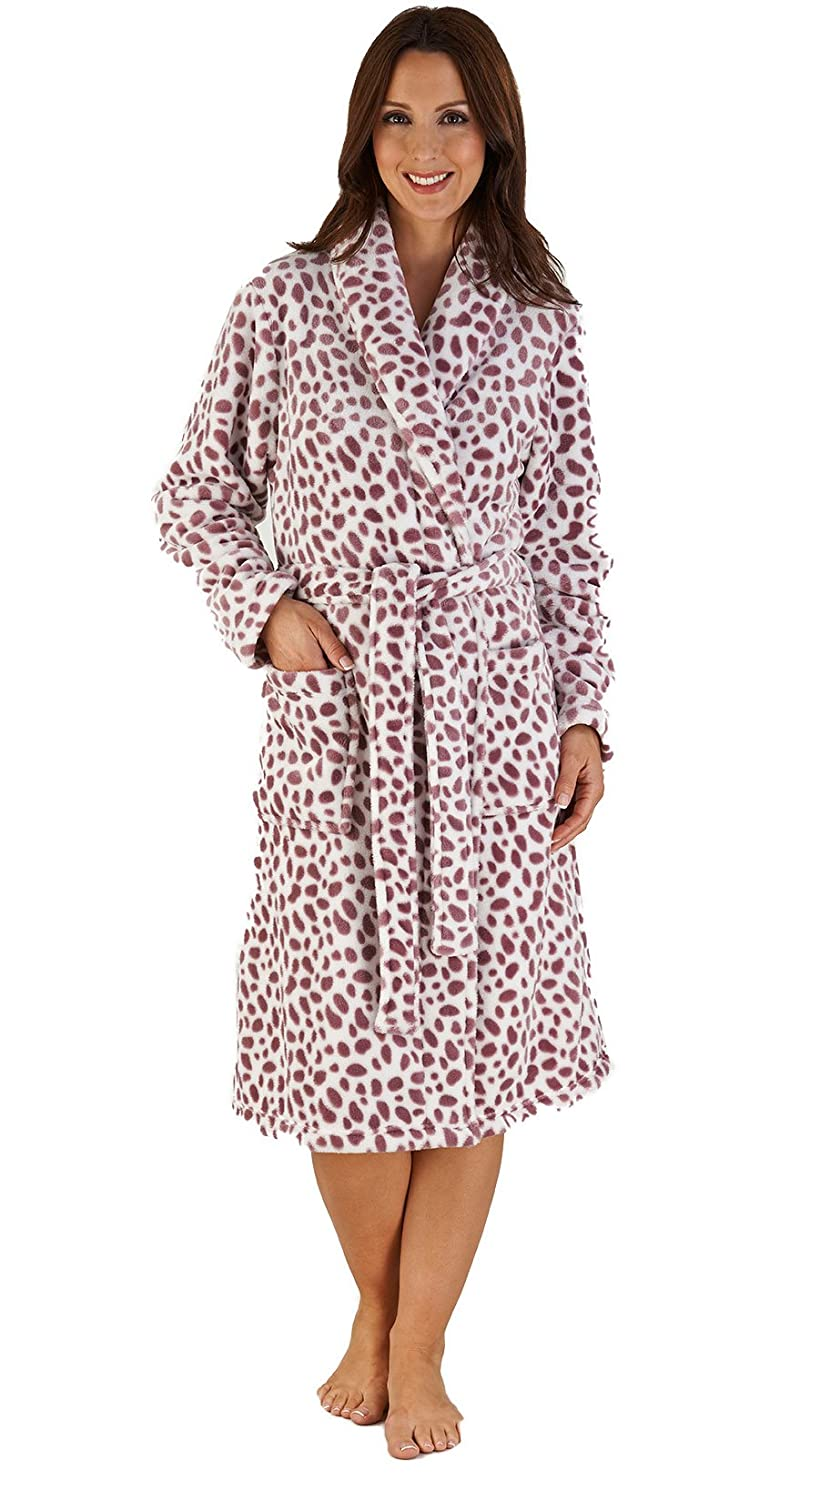 2e2f33f877 Slenderella Ladies Luxurious Soft Fleece Dressing Gown Wrap Around with  Pockets in Dalmatian Animal Print S-XL (Small